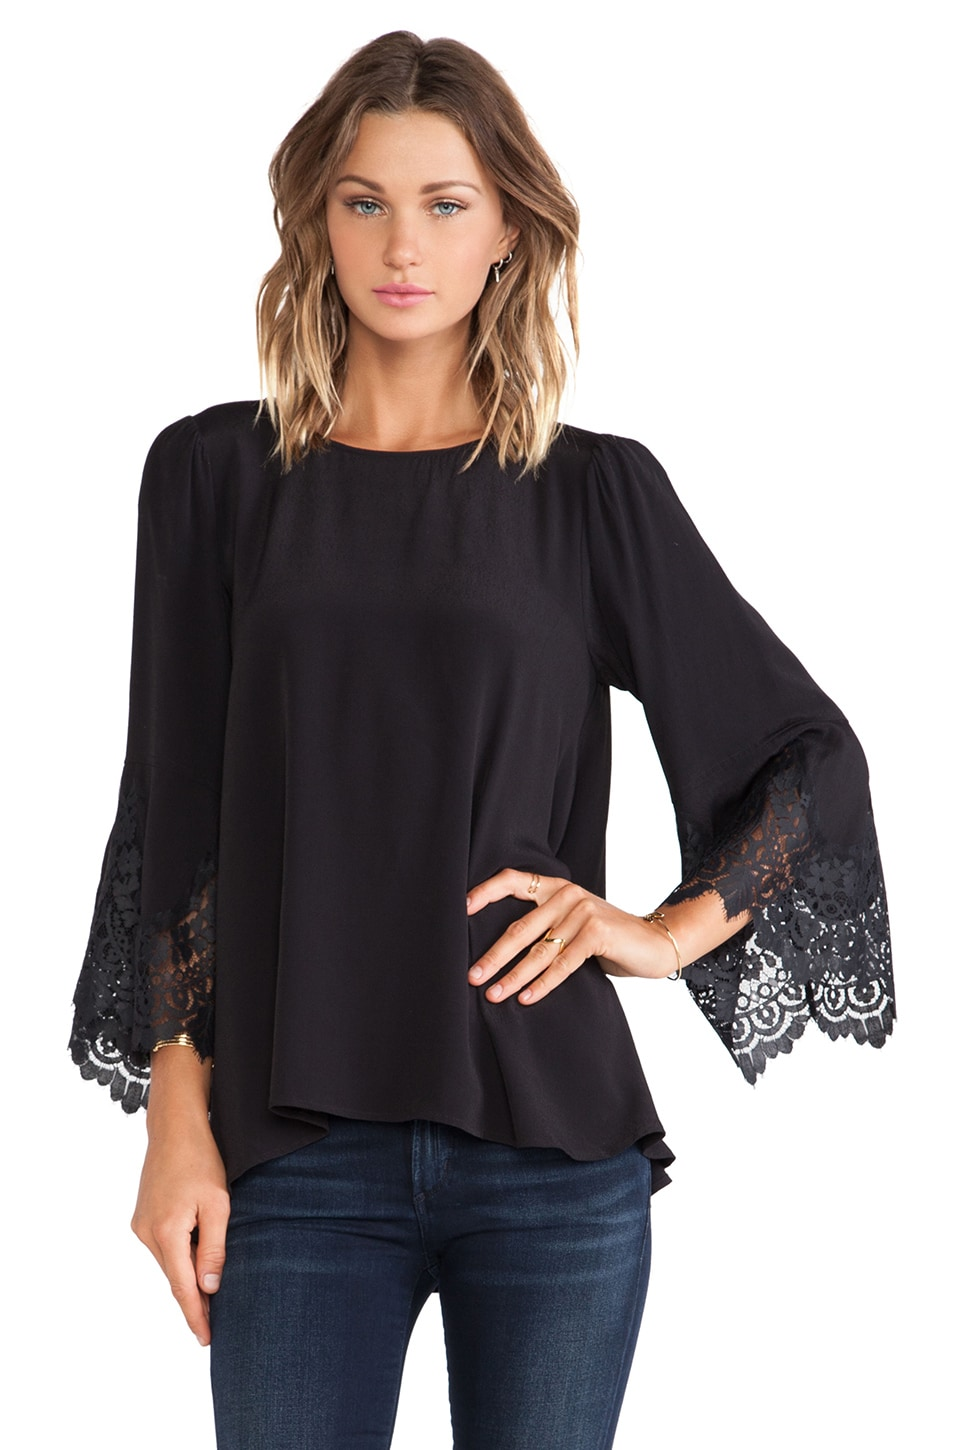 For Love & Lemons Bourbon Top in Black